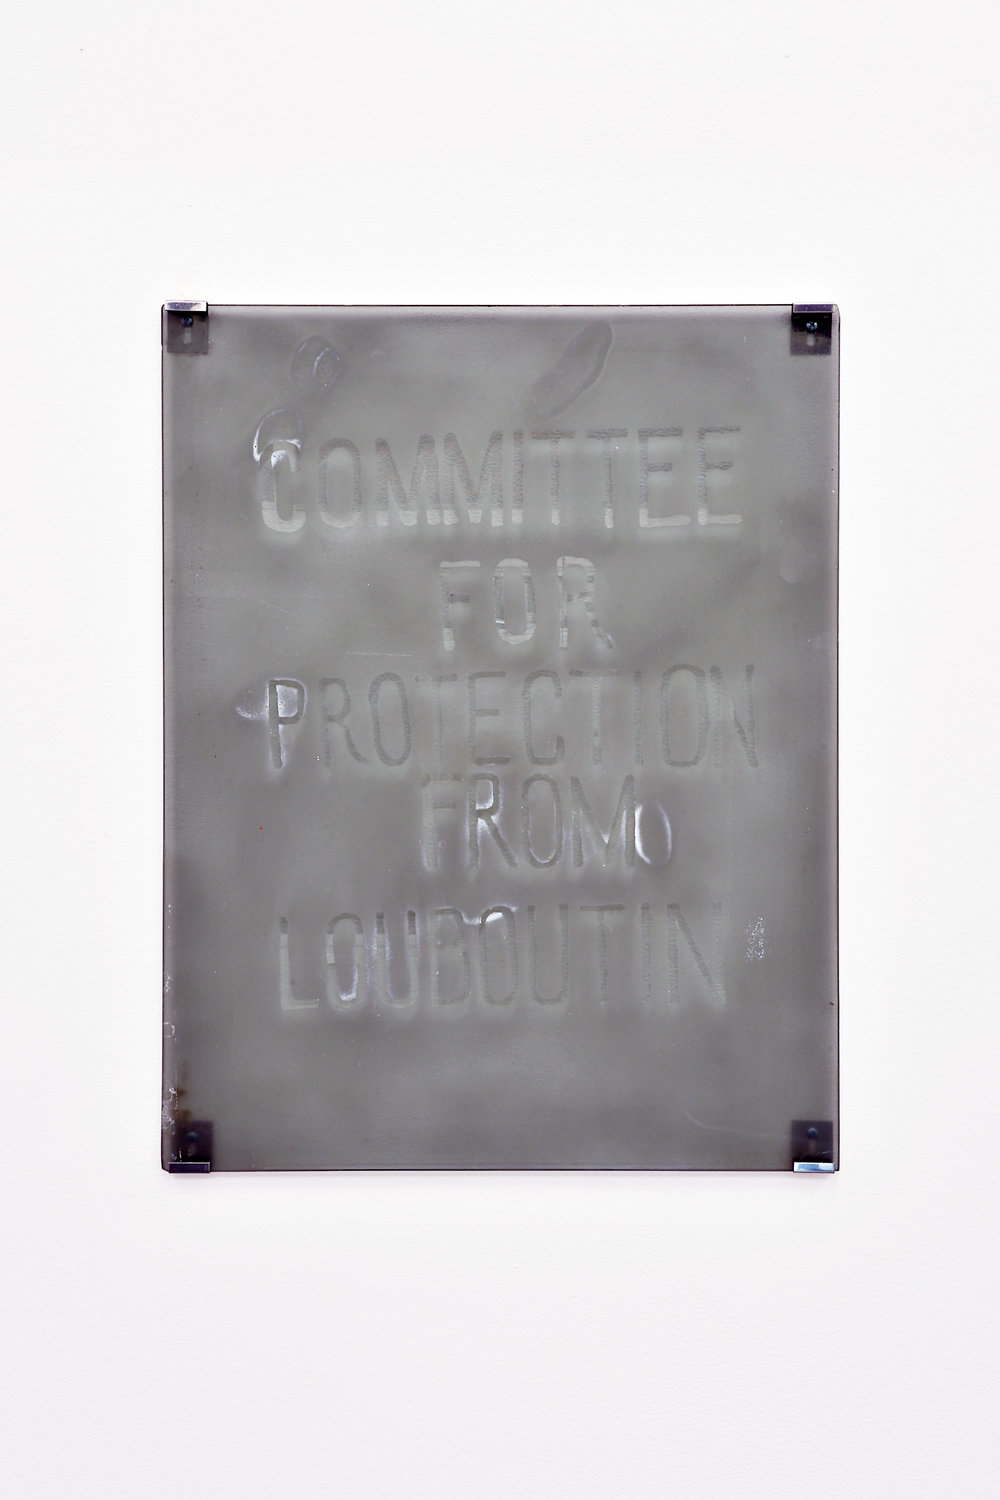 Monstratsiya (committee for protection from Louboutin),  2018, Translucent spray paint and glass, 21.25 x 14.75 inches